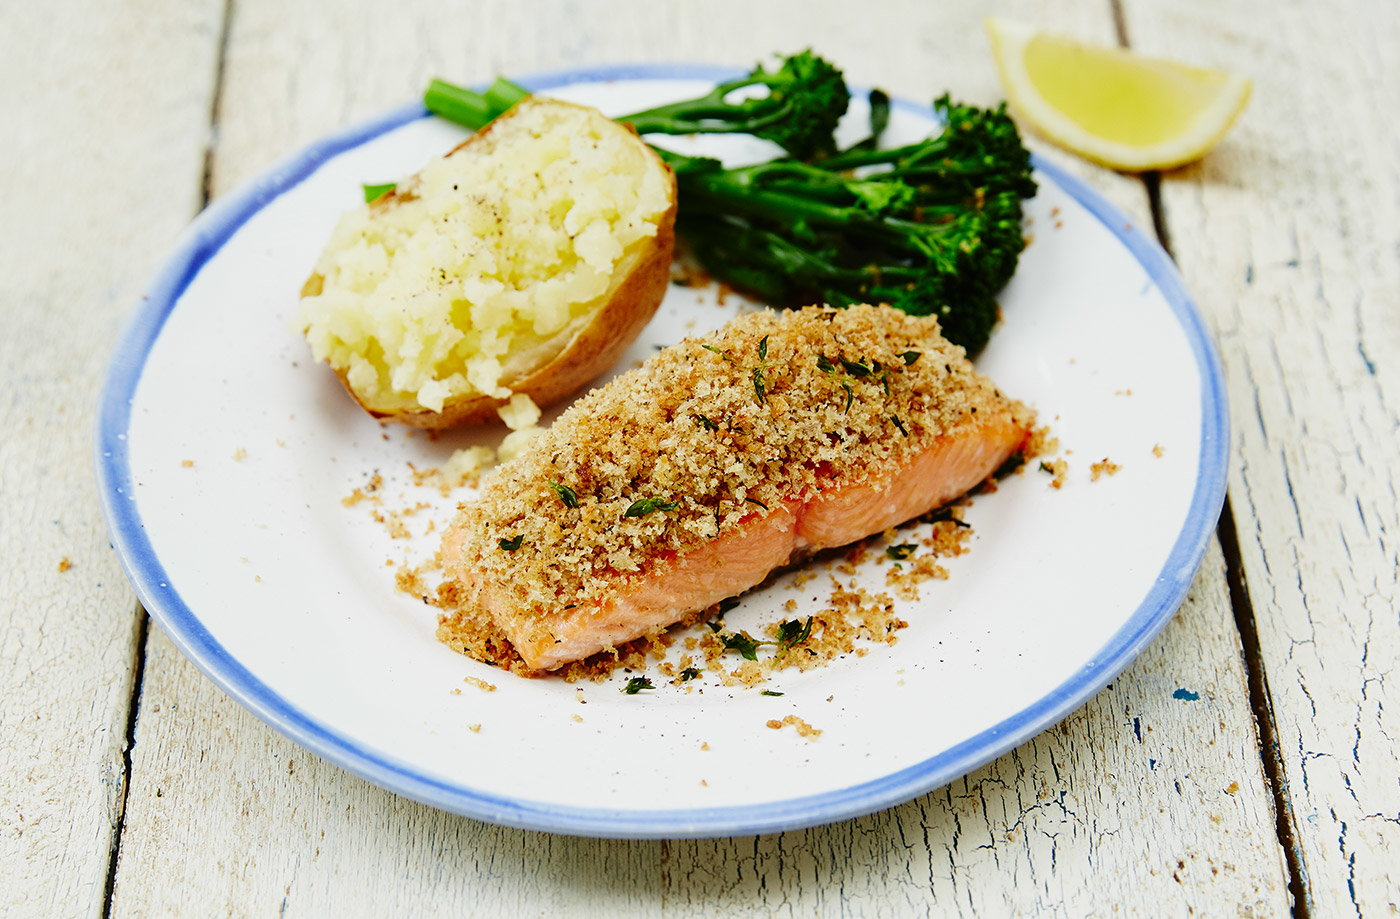 Easy herb-crusted fish recipe